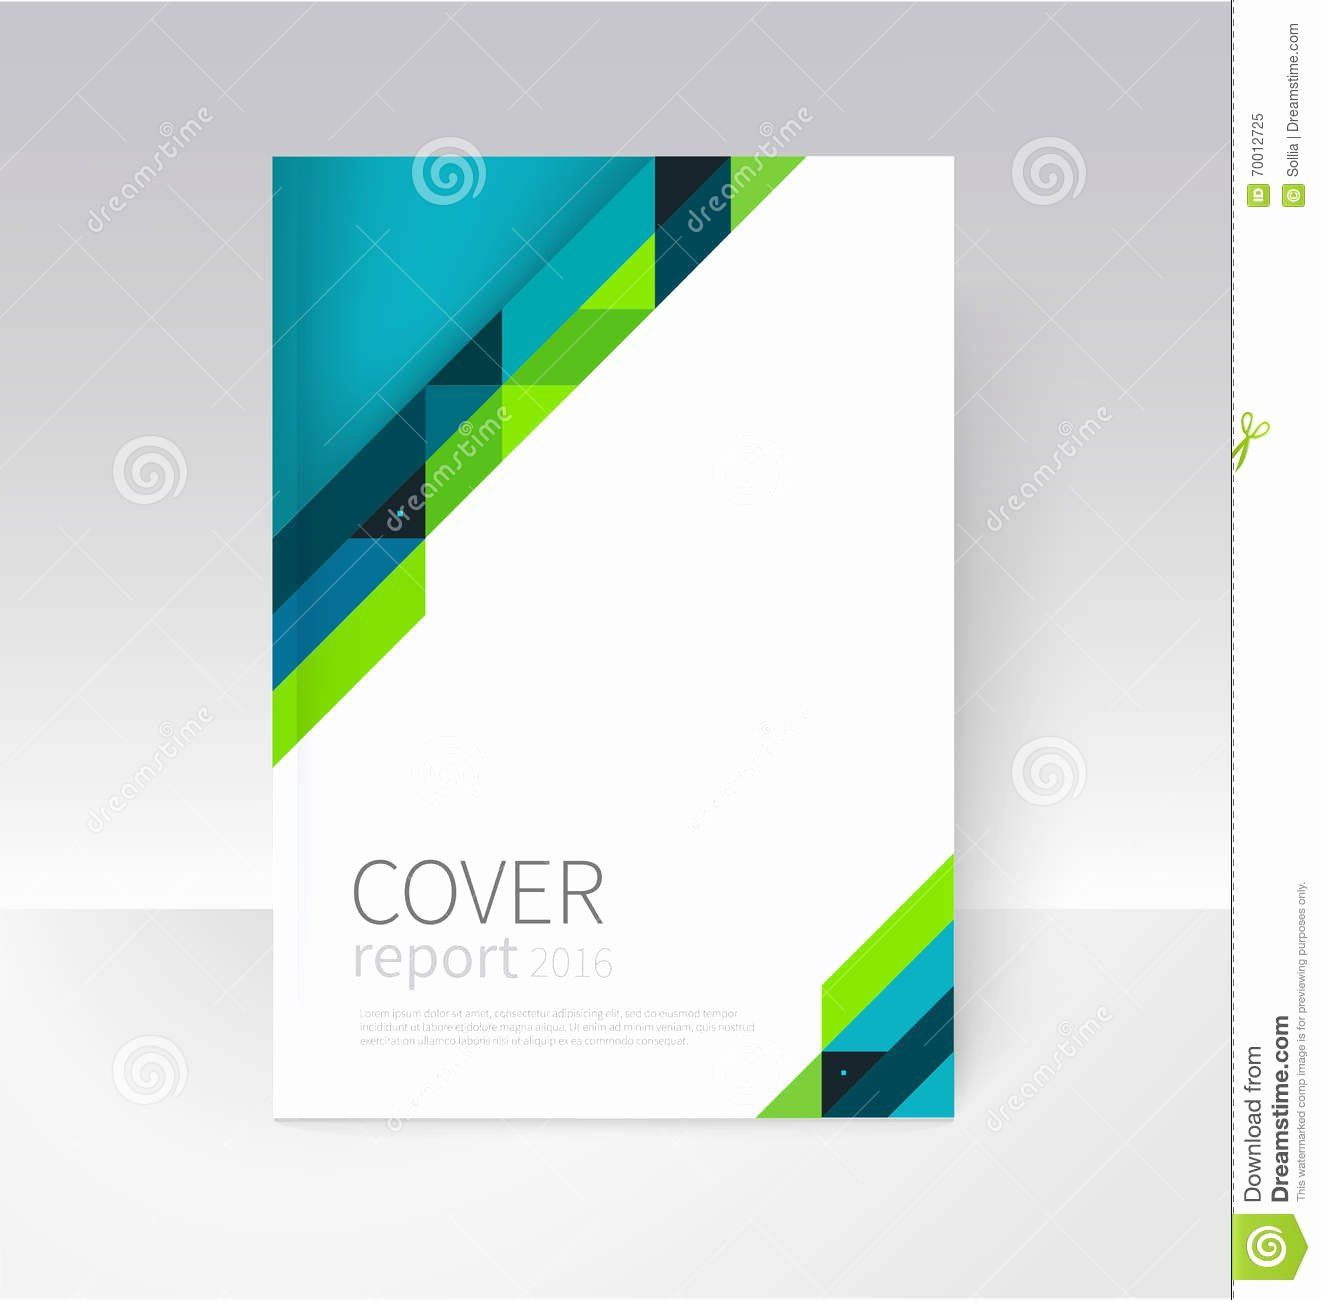 Free Downloadable Word Templates In 2020 Cover Page Template